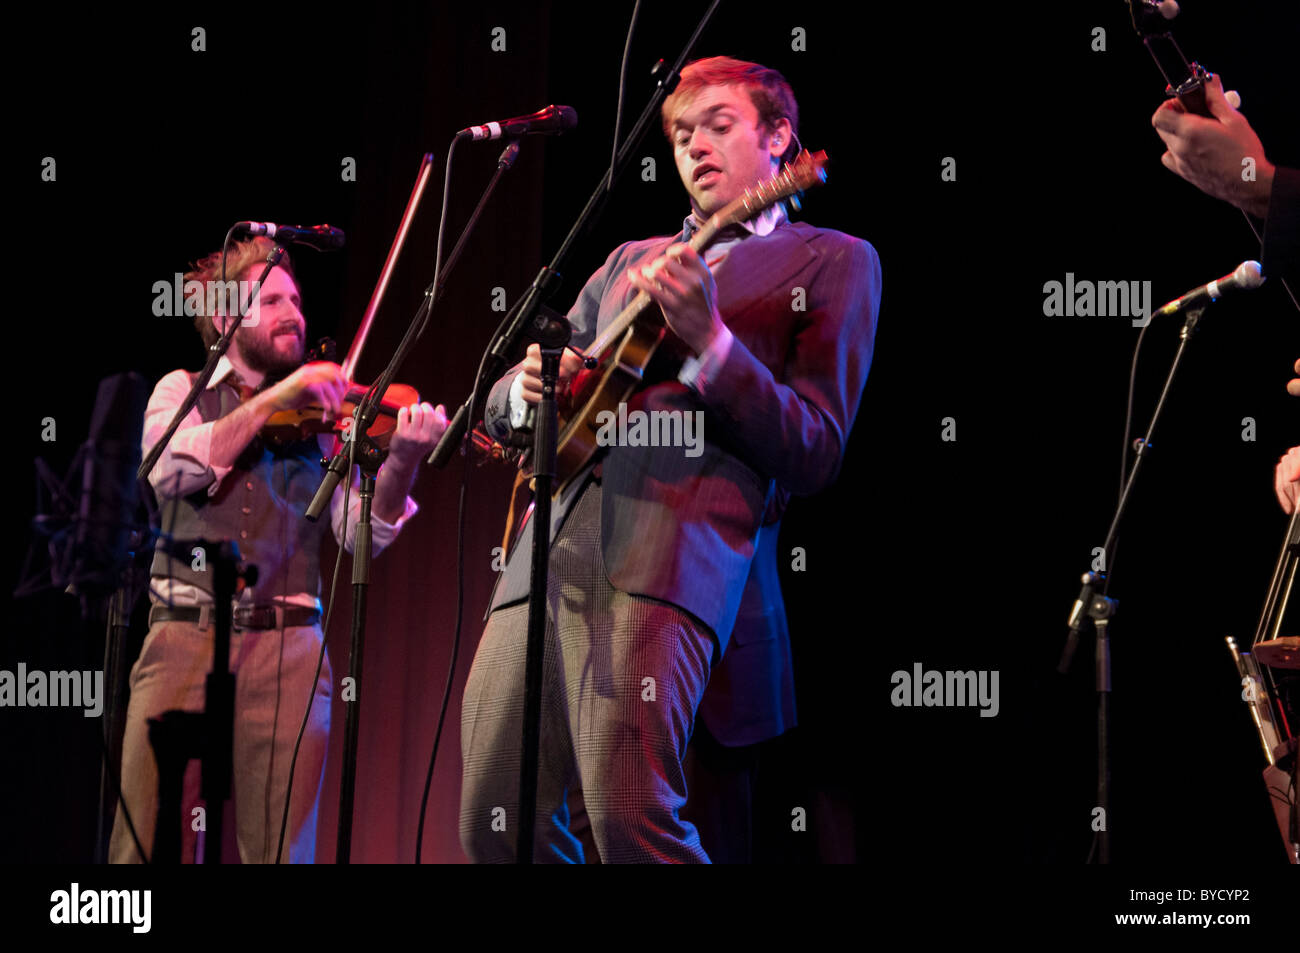 Punch Brothers at the Somerville Theatre, Somerville, MA - Stock Image